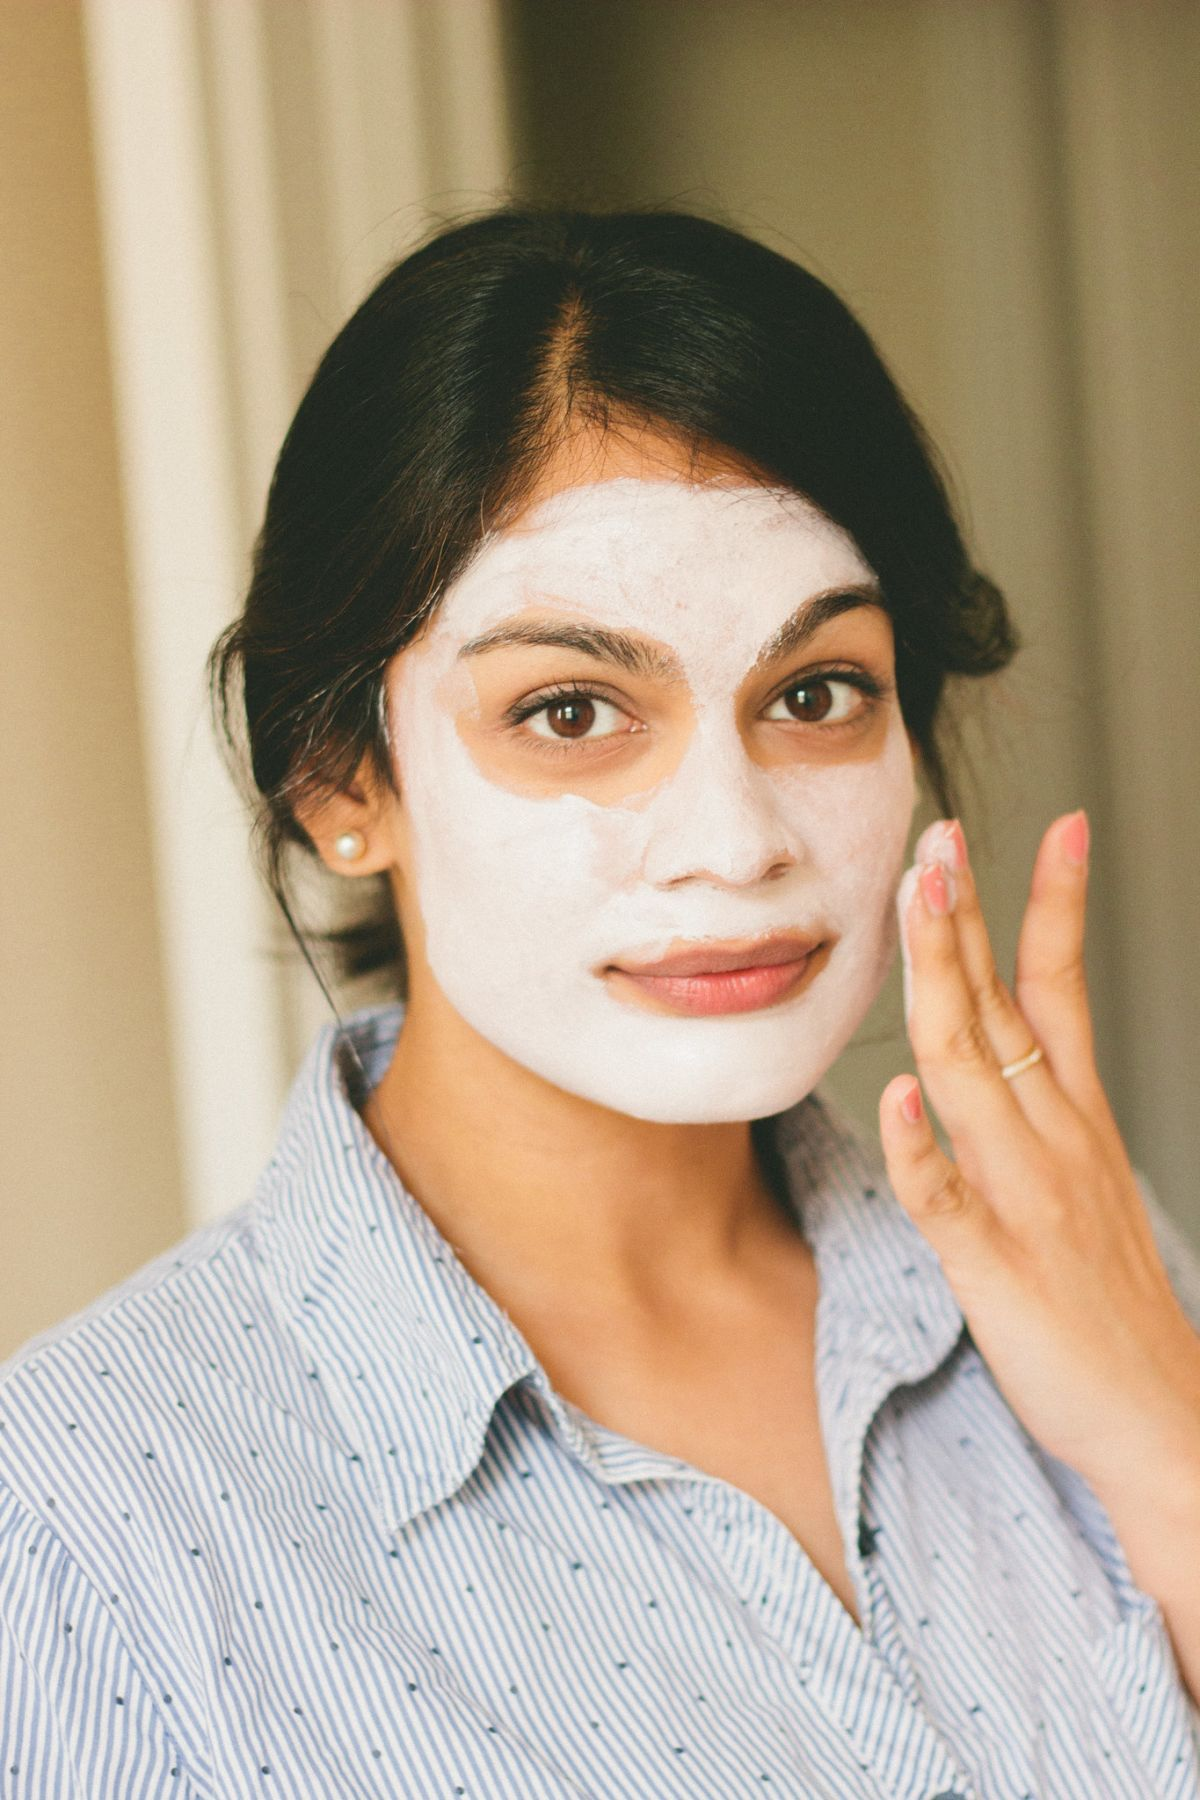 Perfecting a Skincare Routine